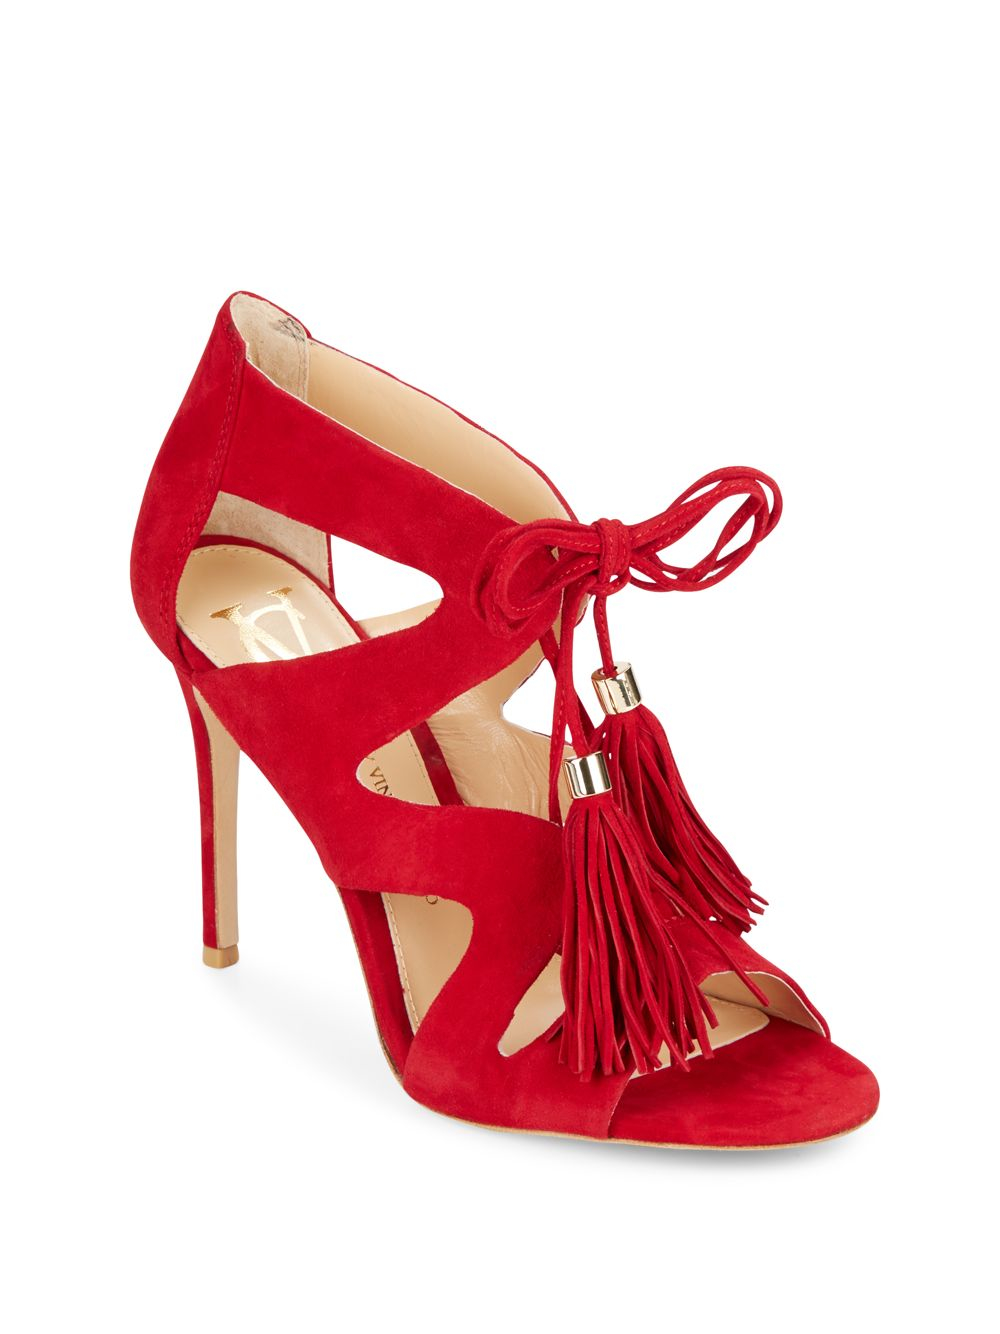 6fc9591bd24e Lyst vince camuto signature manders suede lace up pumps in red jpg  1000x1334 Vince camuto red